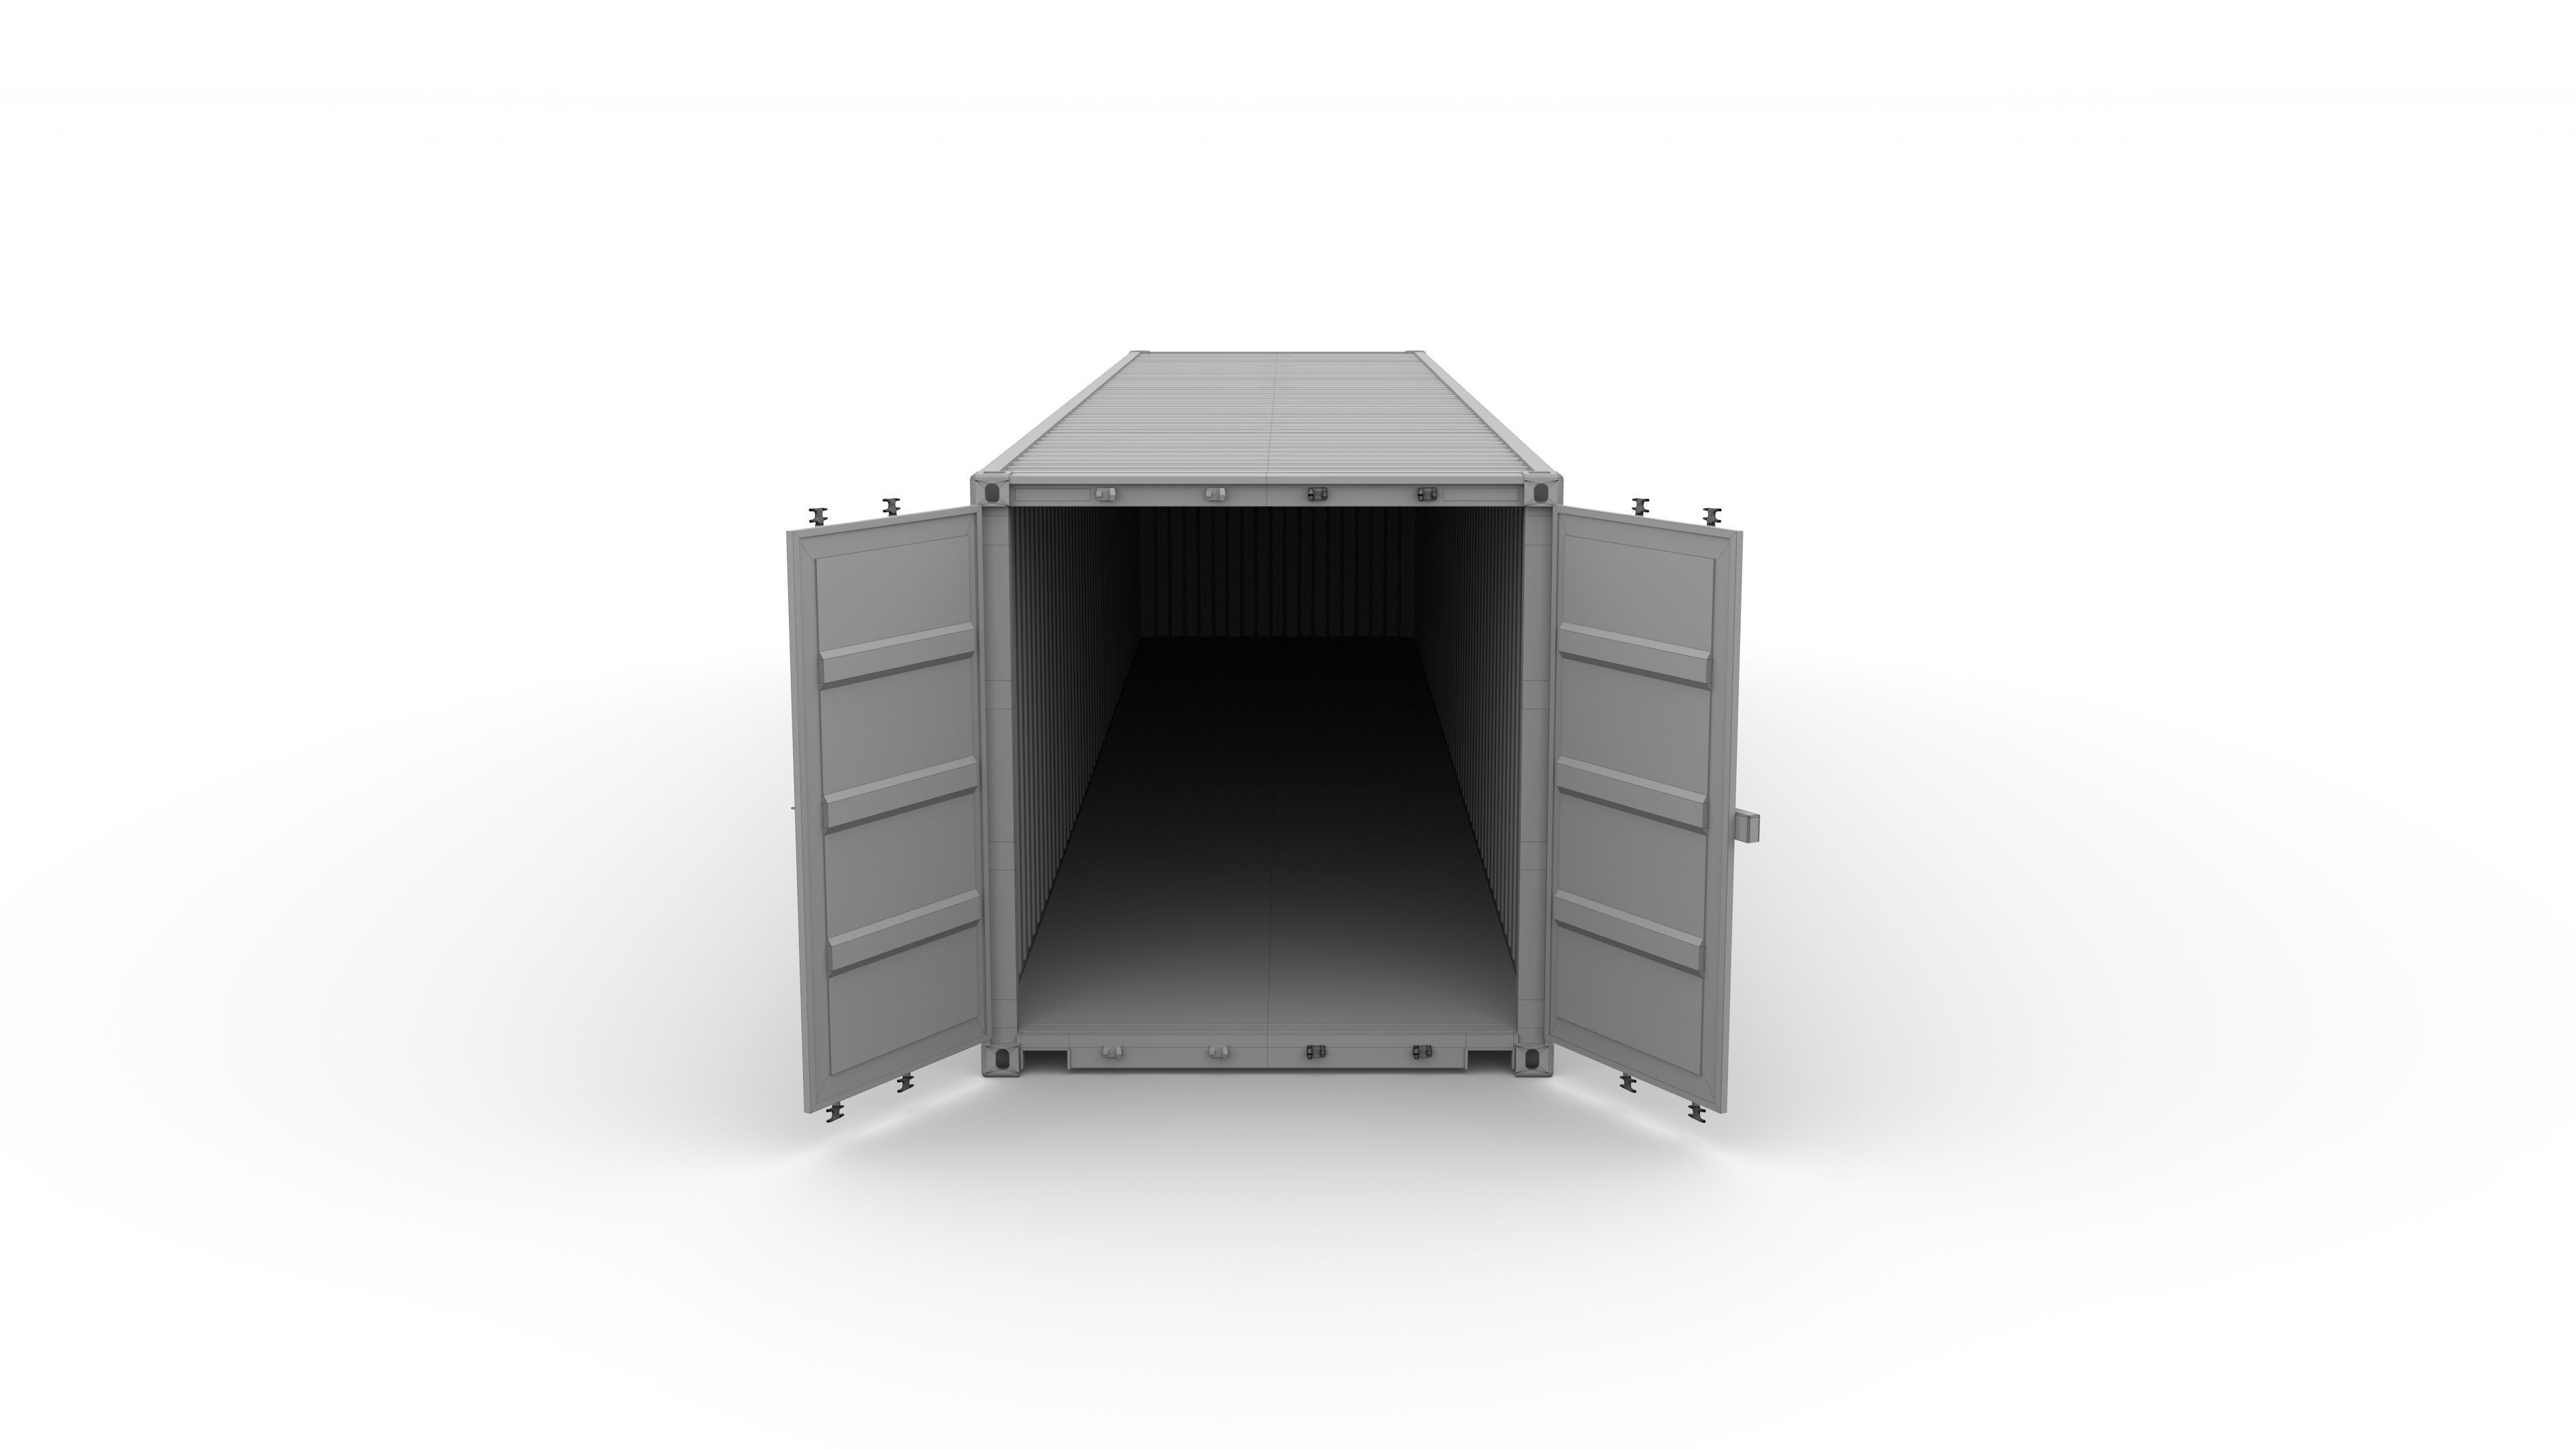 Shipping Furniture Model Endearing Shipping Container Collection 3D  Cgtrader Review